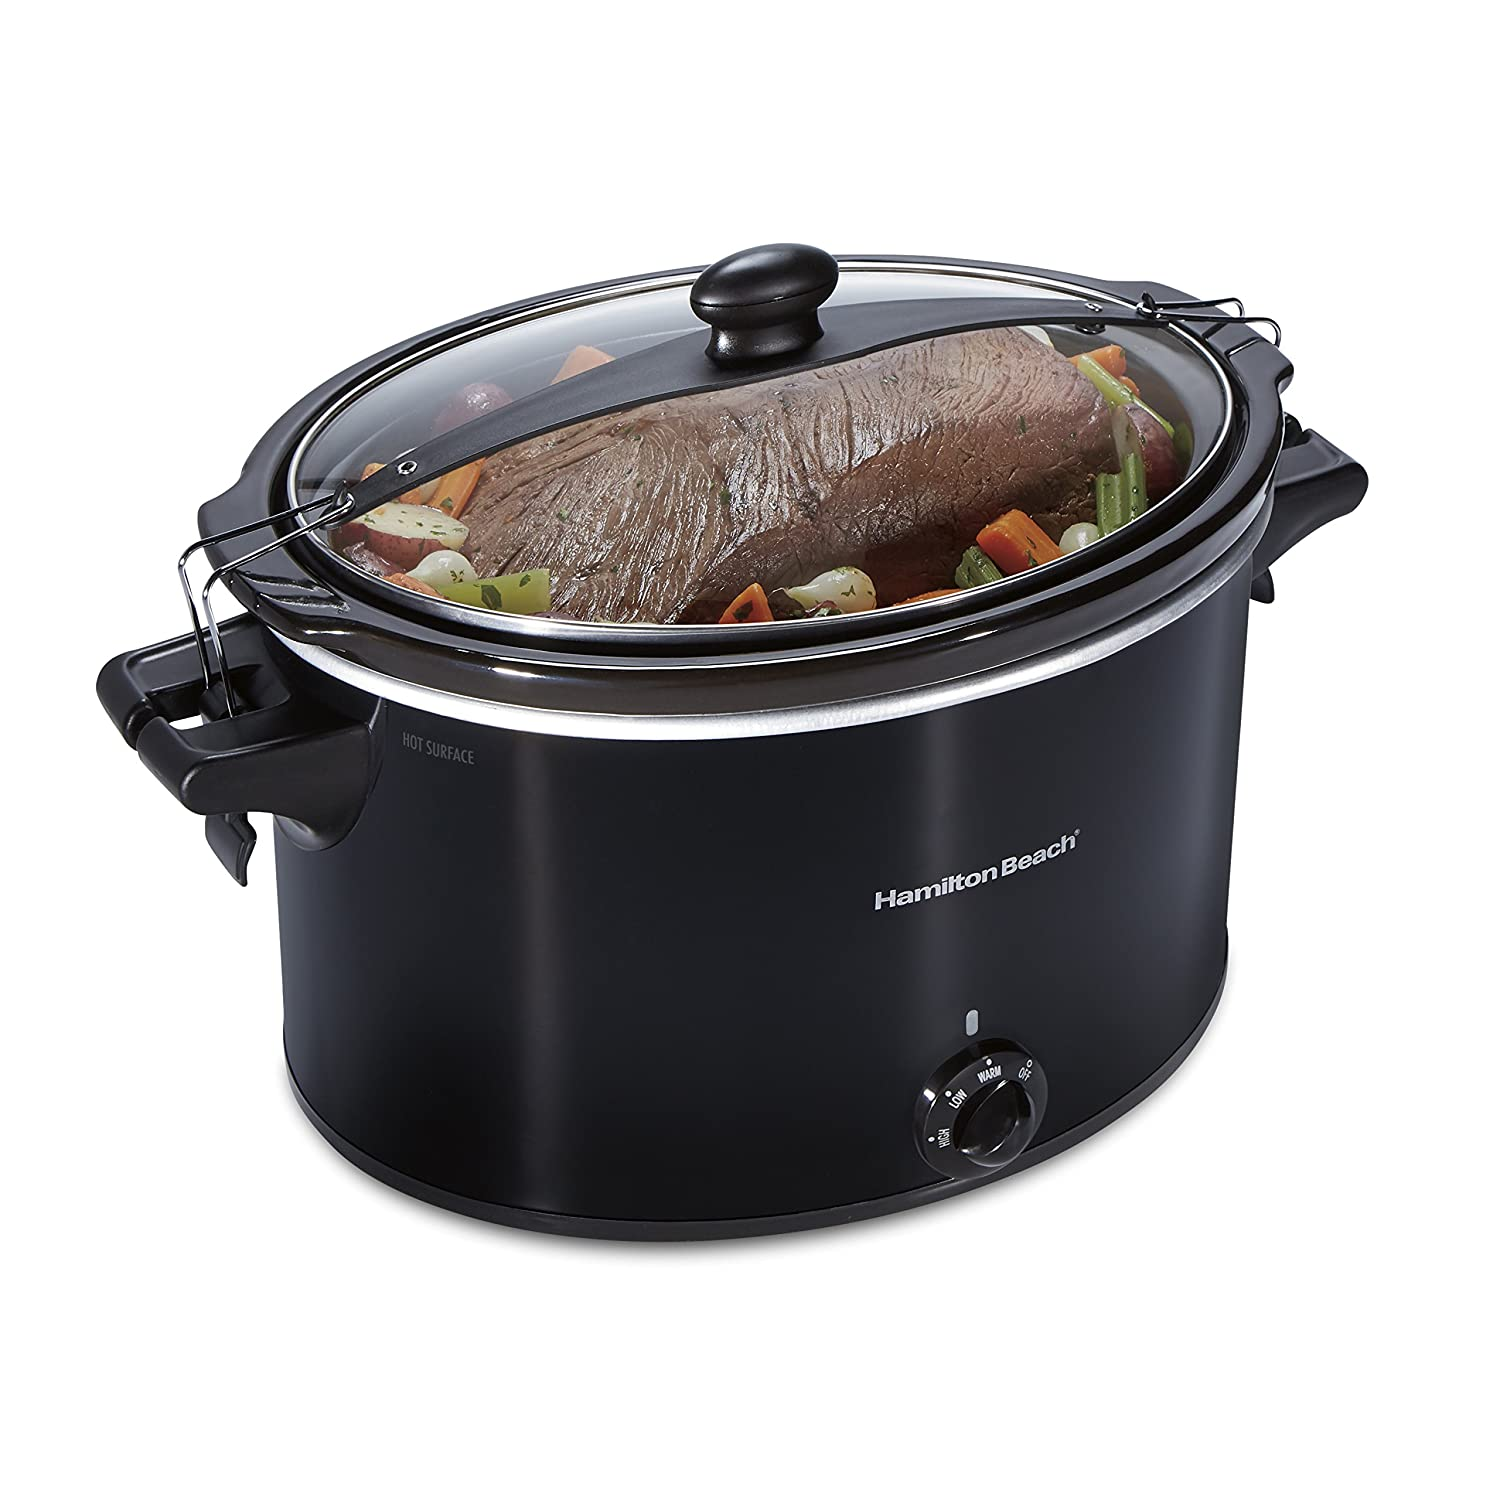 Hamilton Beach 33195 Extra-Large Stay or Go Slow Cooker 10 Quart Capacity Black